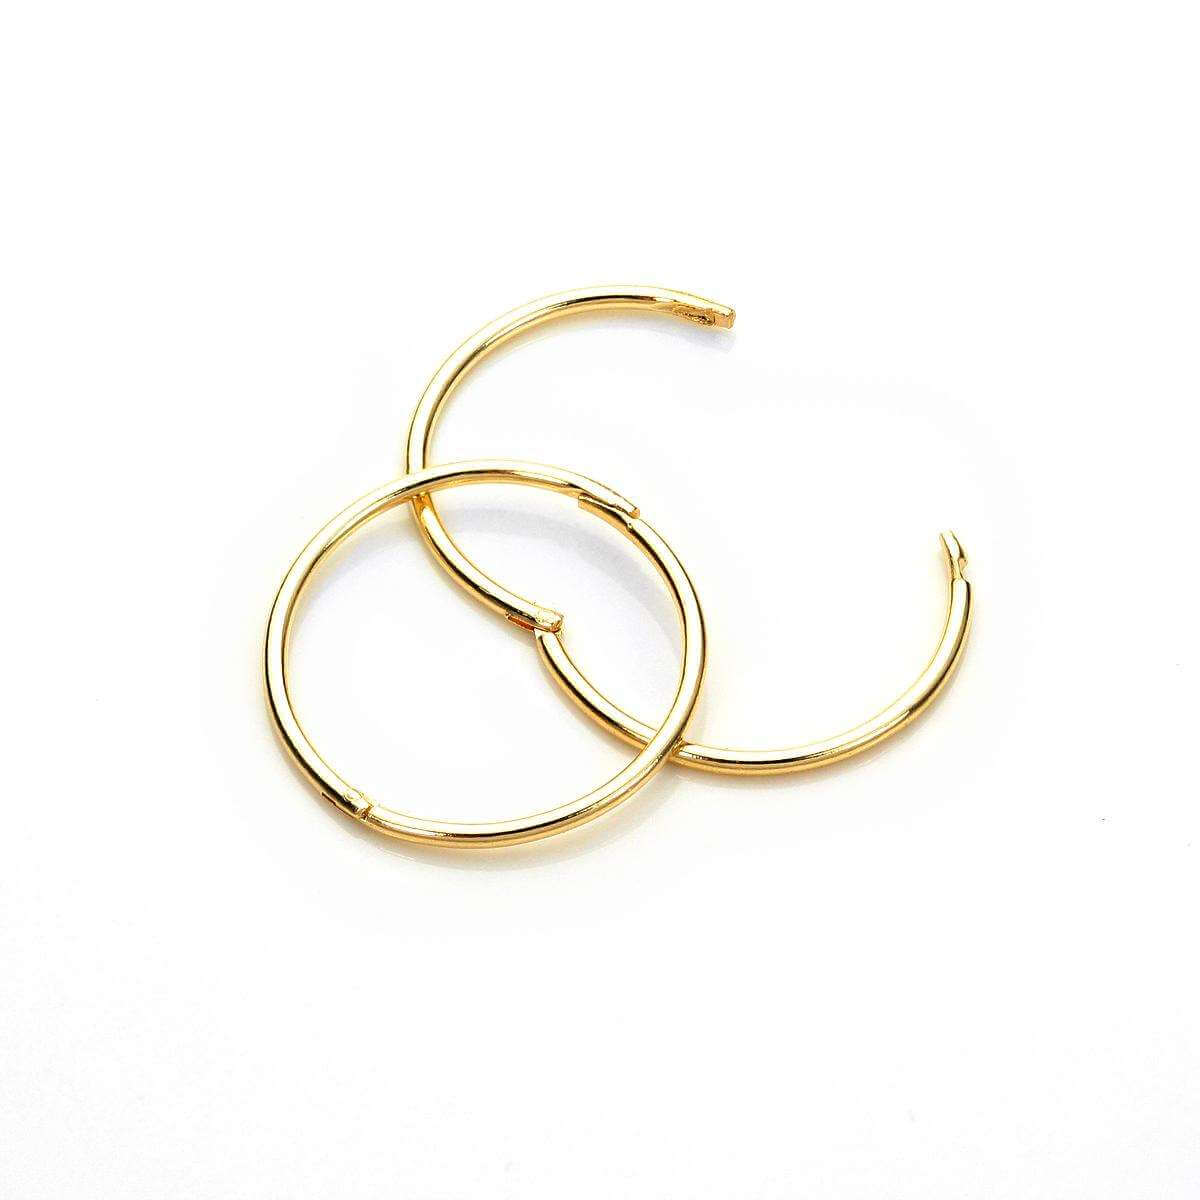 9ct Yellow Gold 15mm Plain Hoop Earrings